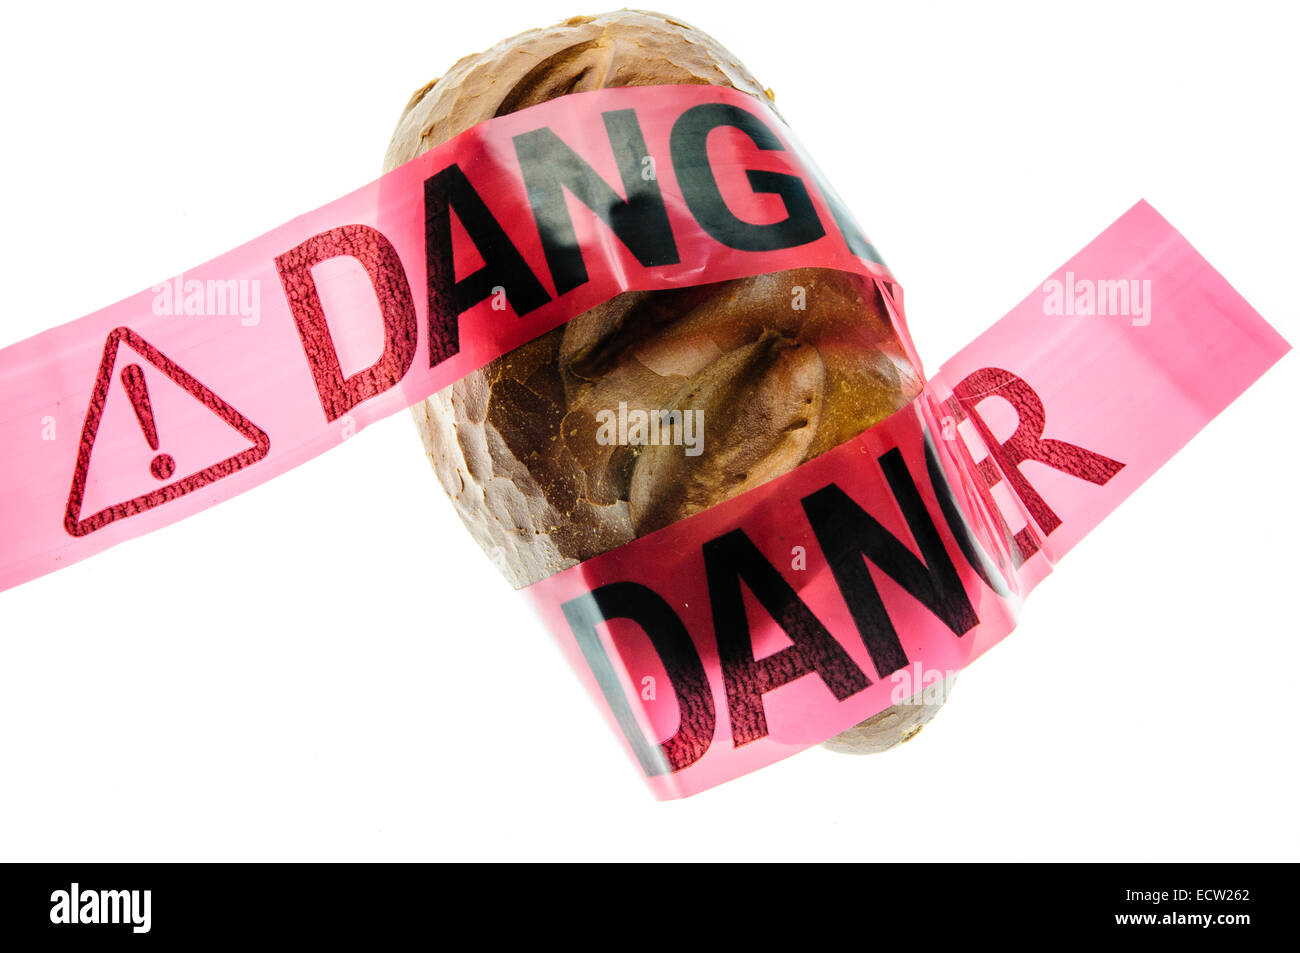 Danger tape placed over crusty bread, to signify the danger of gluten to people with coeliac disease - Stock Image